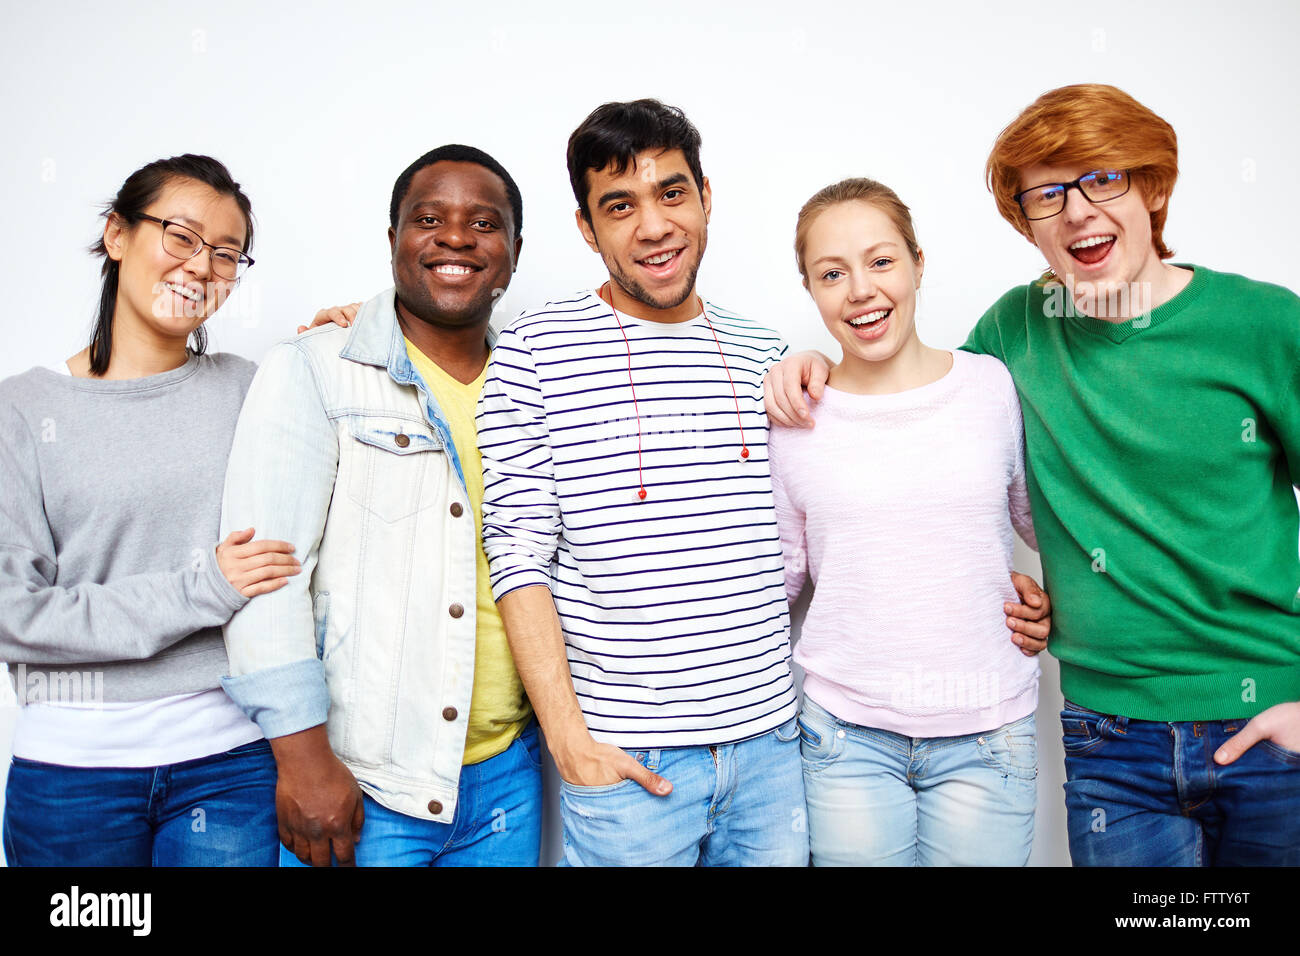 Les étudiants gais Photo Stock